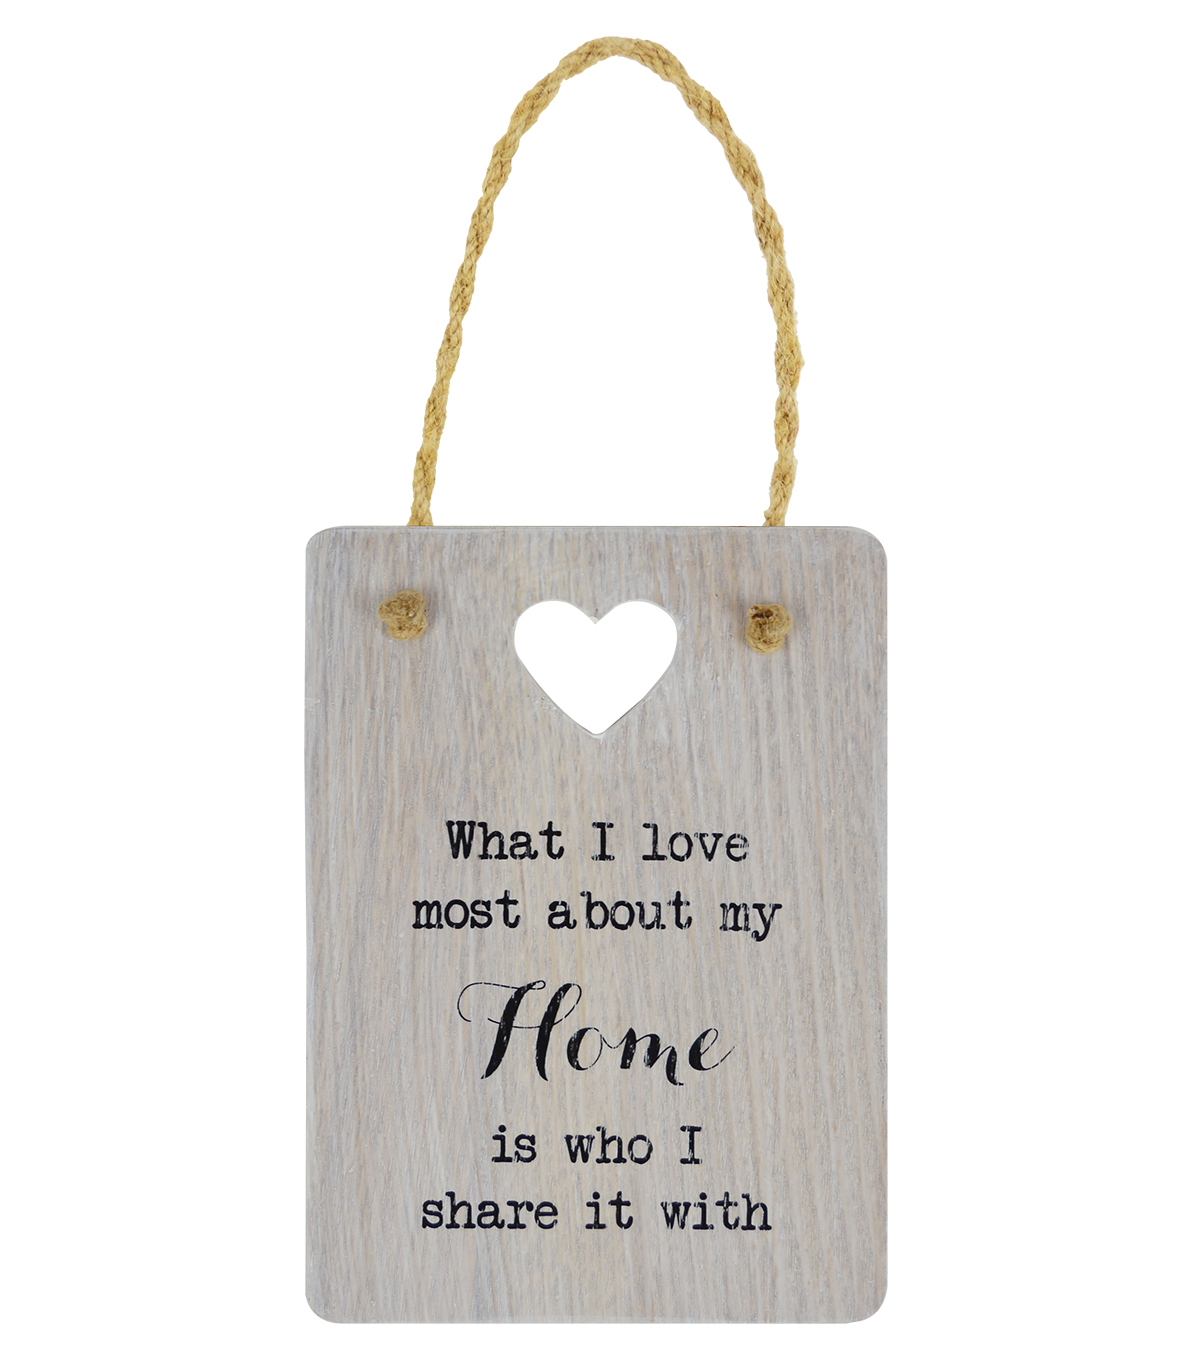 Hudson 43 Wall Tag-What I Love Most About My Home is Who I Share it With